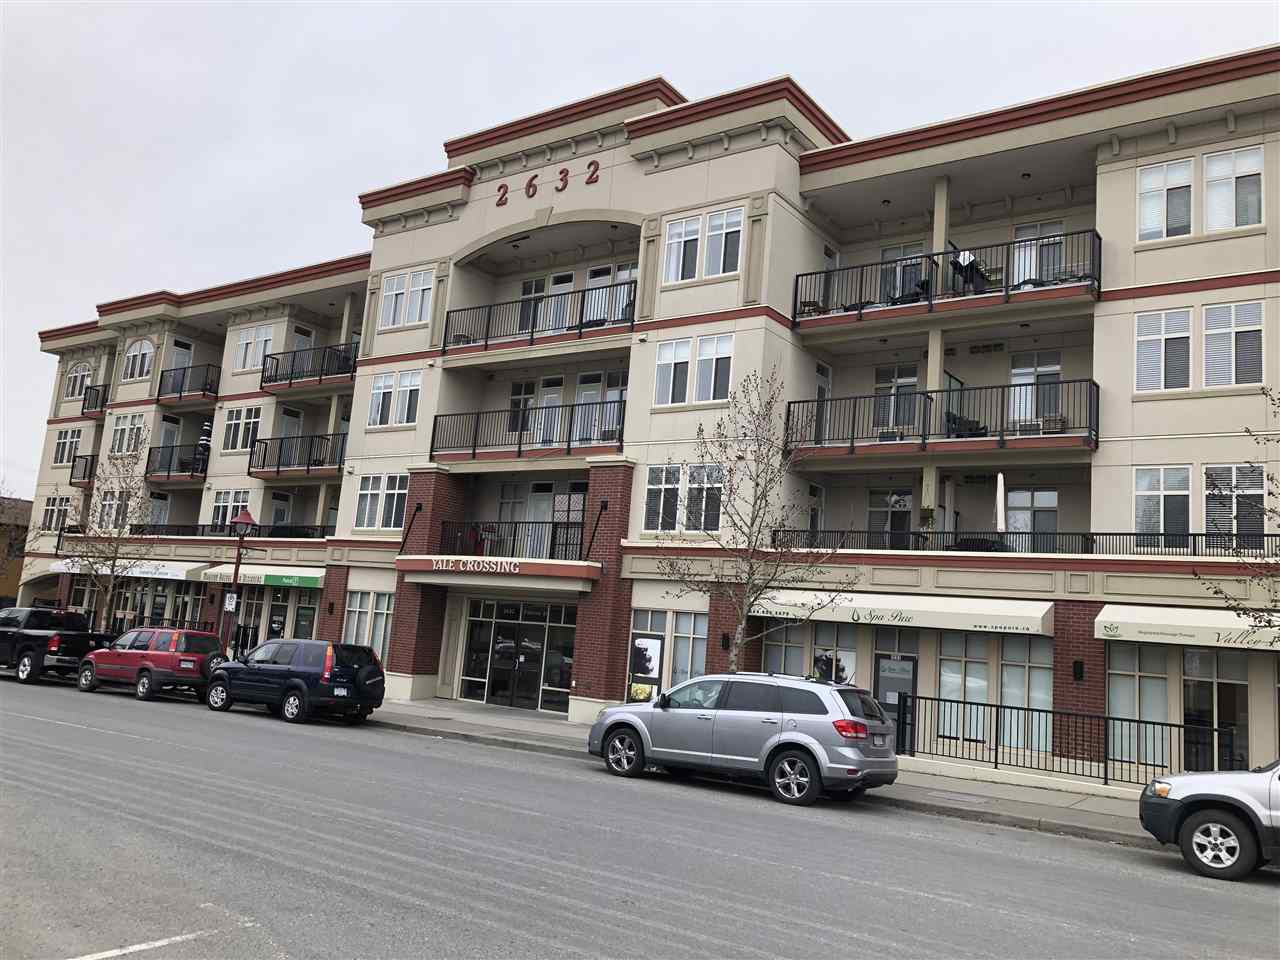 """Main Photo: 206 2632 PAULINE Street in Abbotsford: Central Abbotsford Condo for sale in """"Yale Crossing"""" : MLS®# R2345124"""